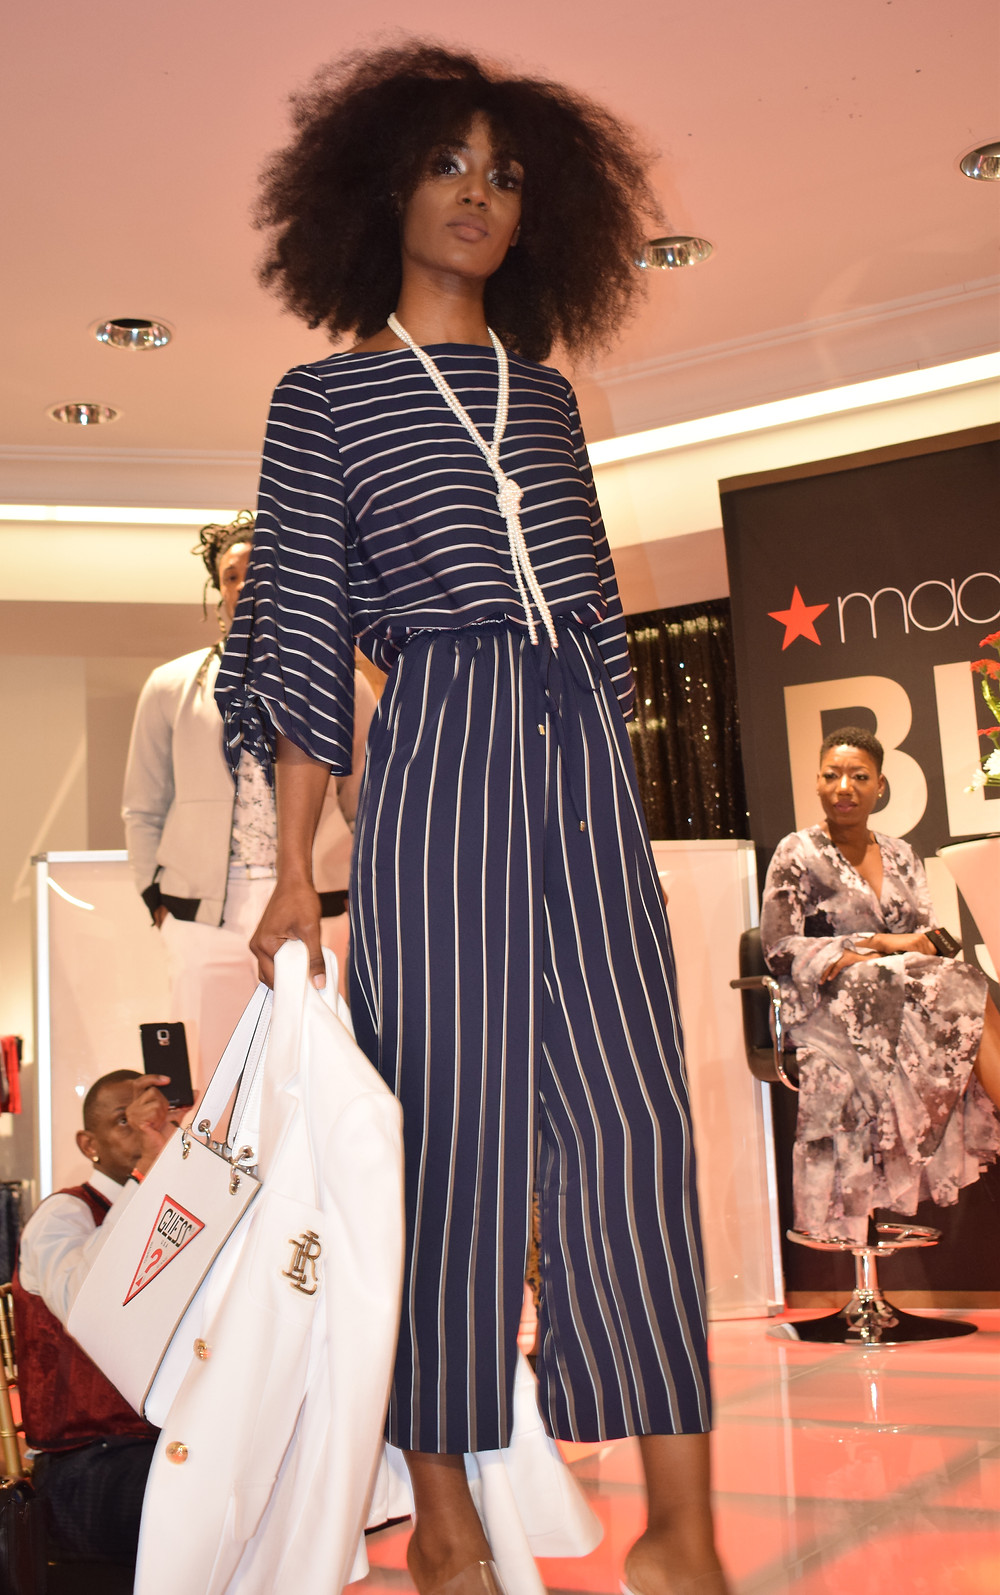 Macy's Black History Month Celebration in Atlanta at Lenox Mall; Gavon Owens Fashion Inspired by Ursula Burns